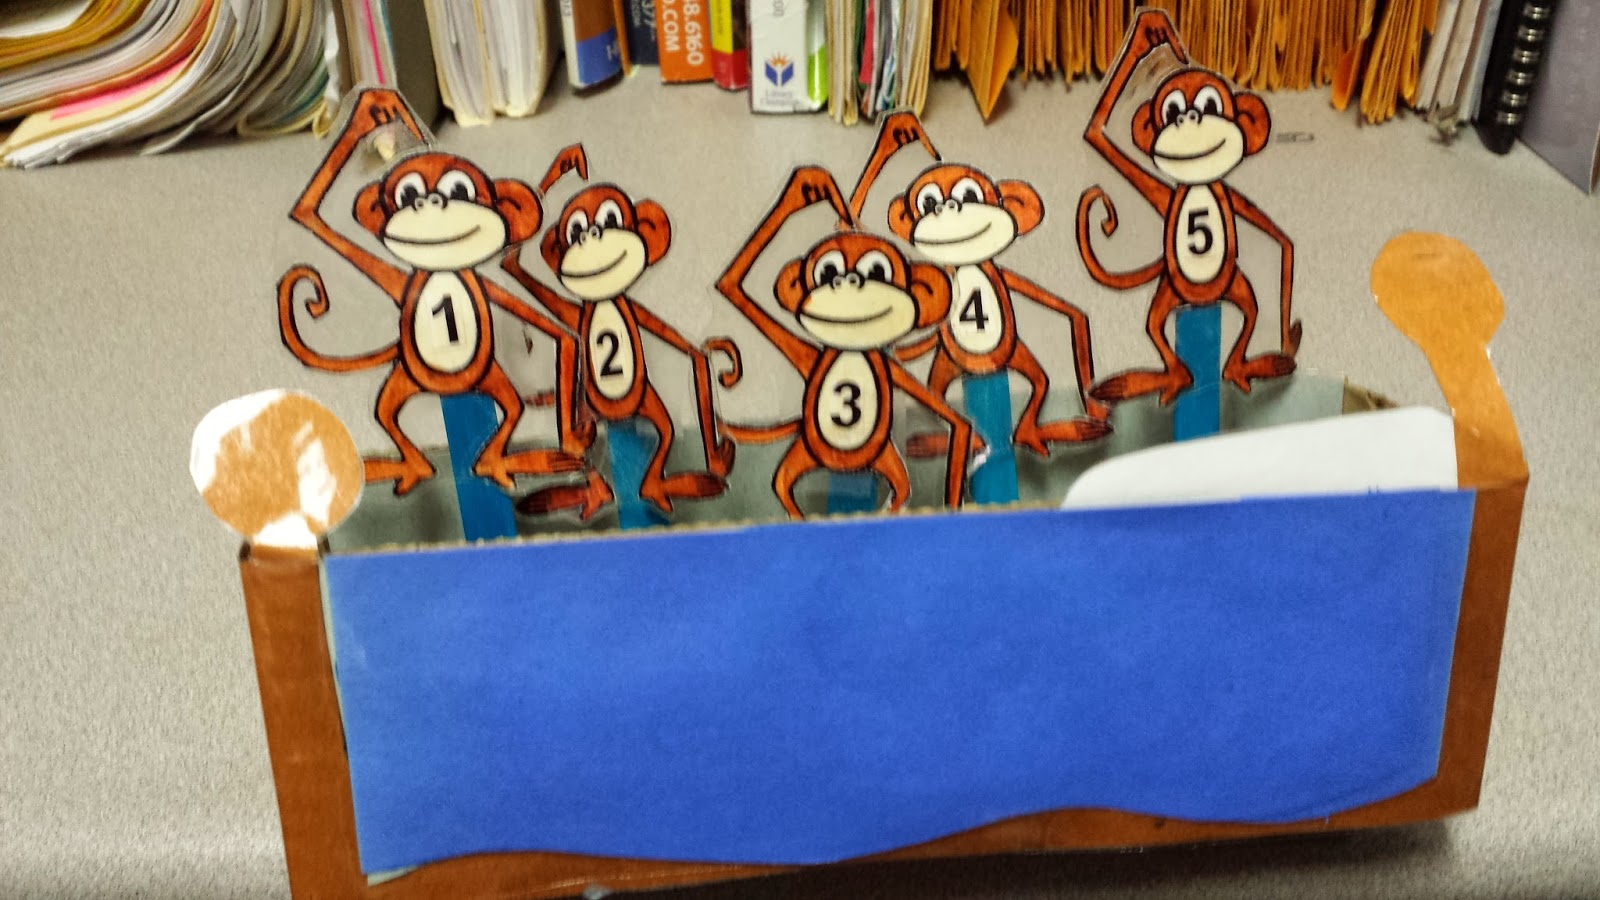 Library JuJu: Five Little Monkeys Pop-Up Puppets